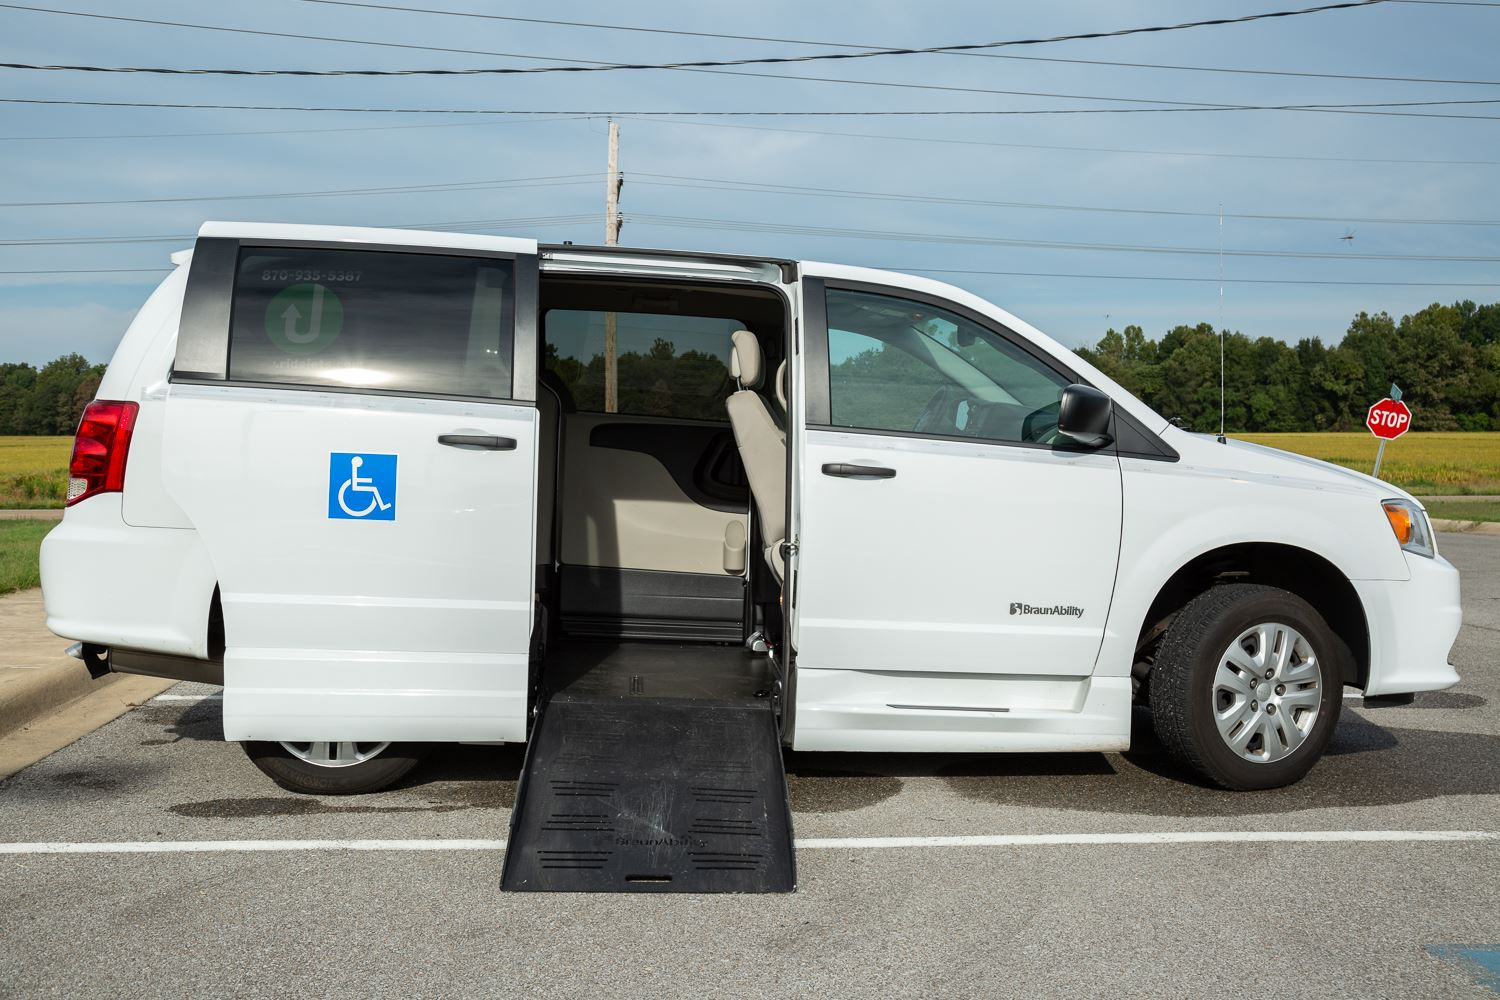 JET Paratransit Van with wheelchair ramp lowered.